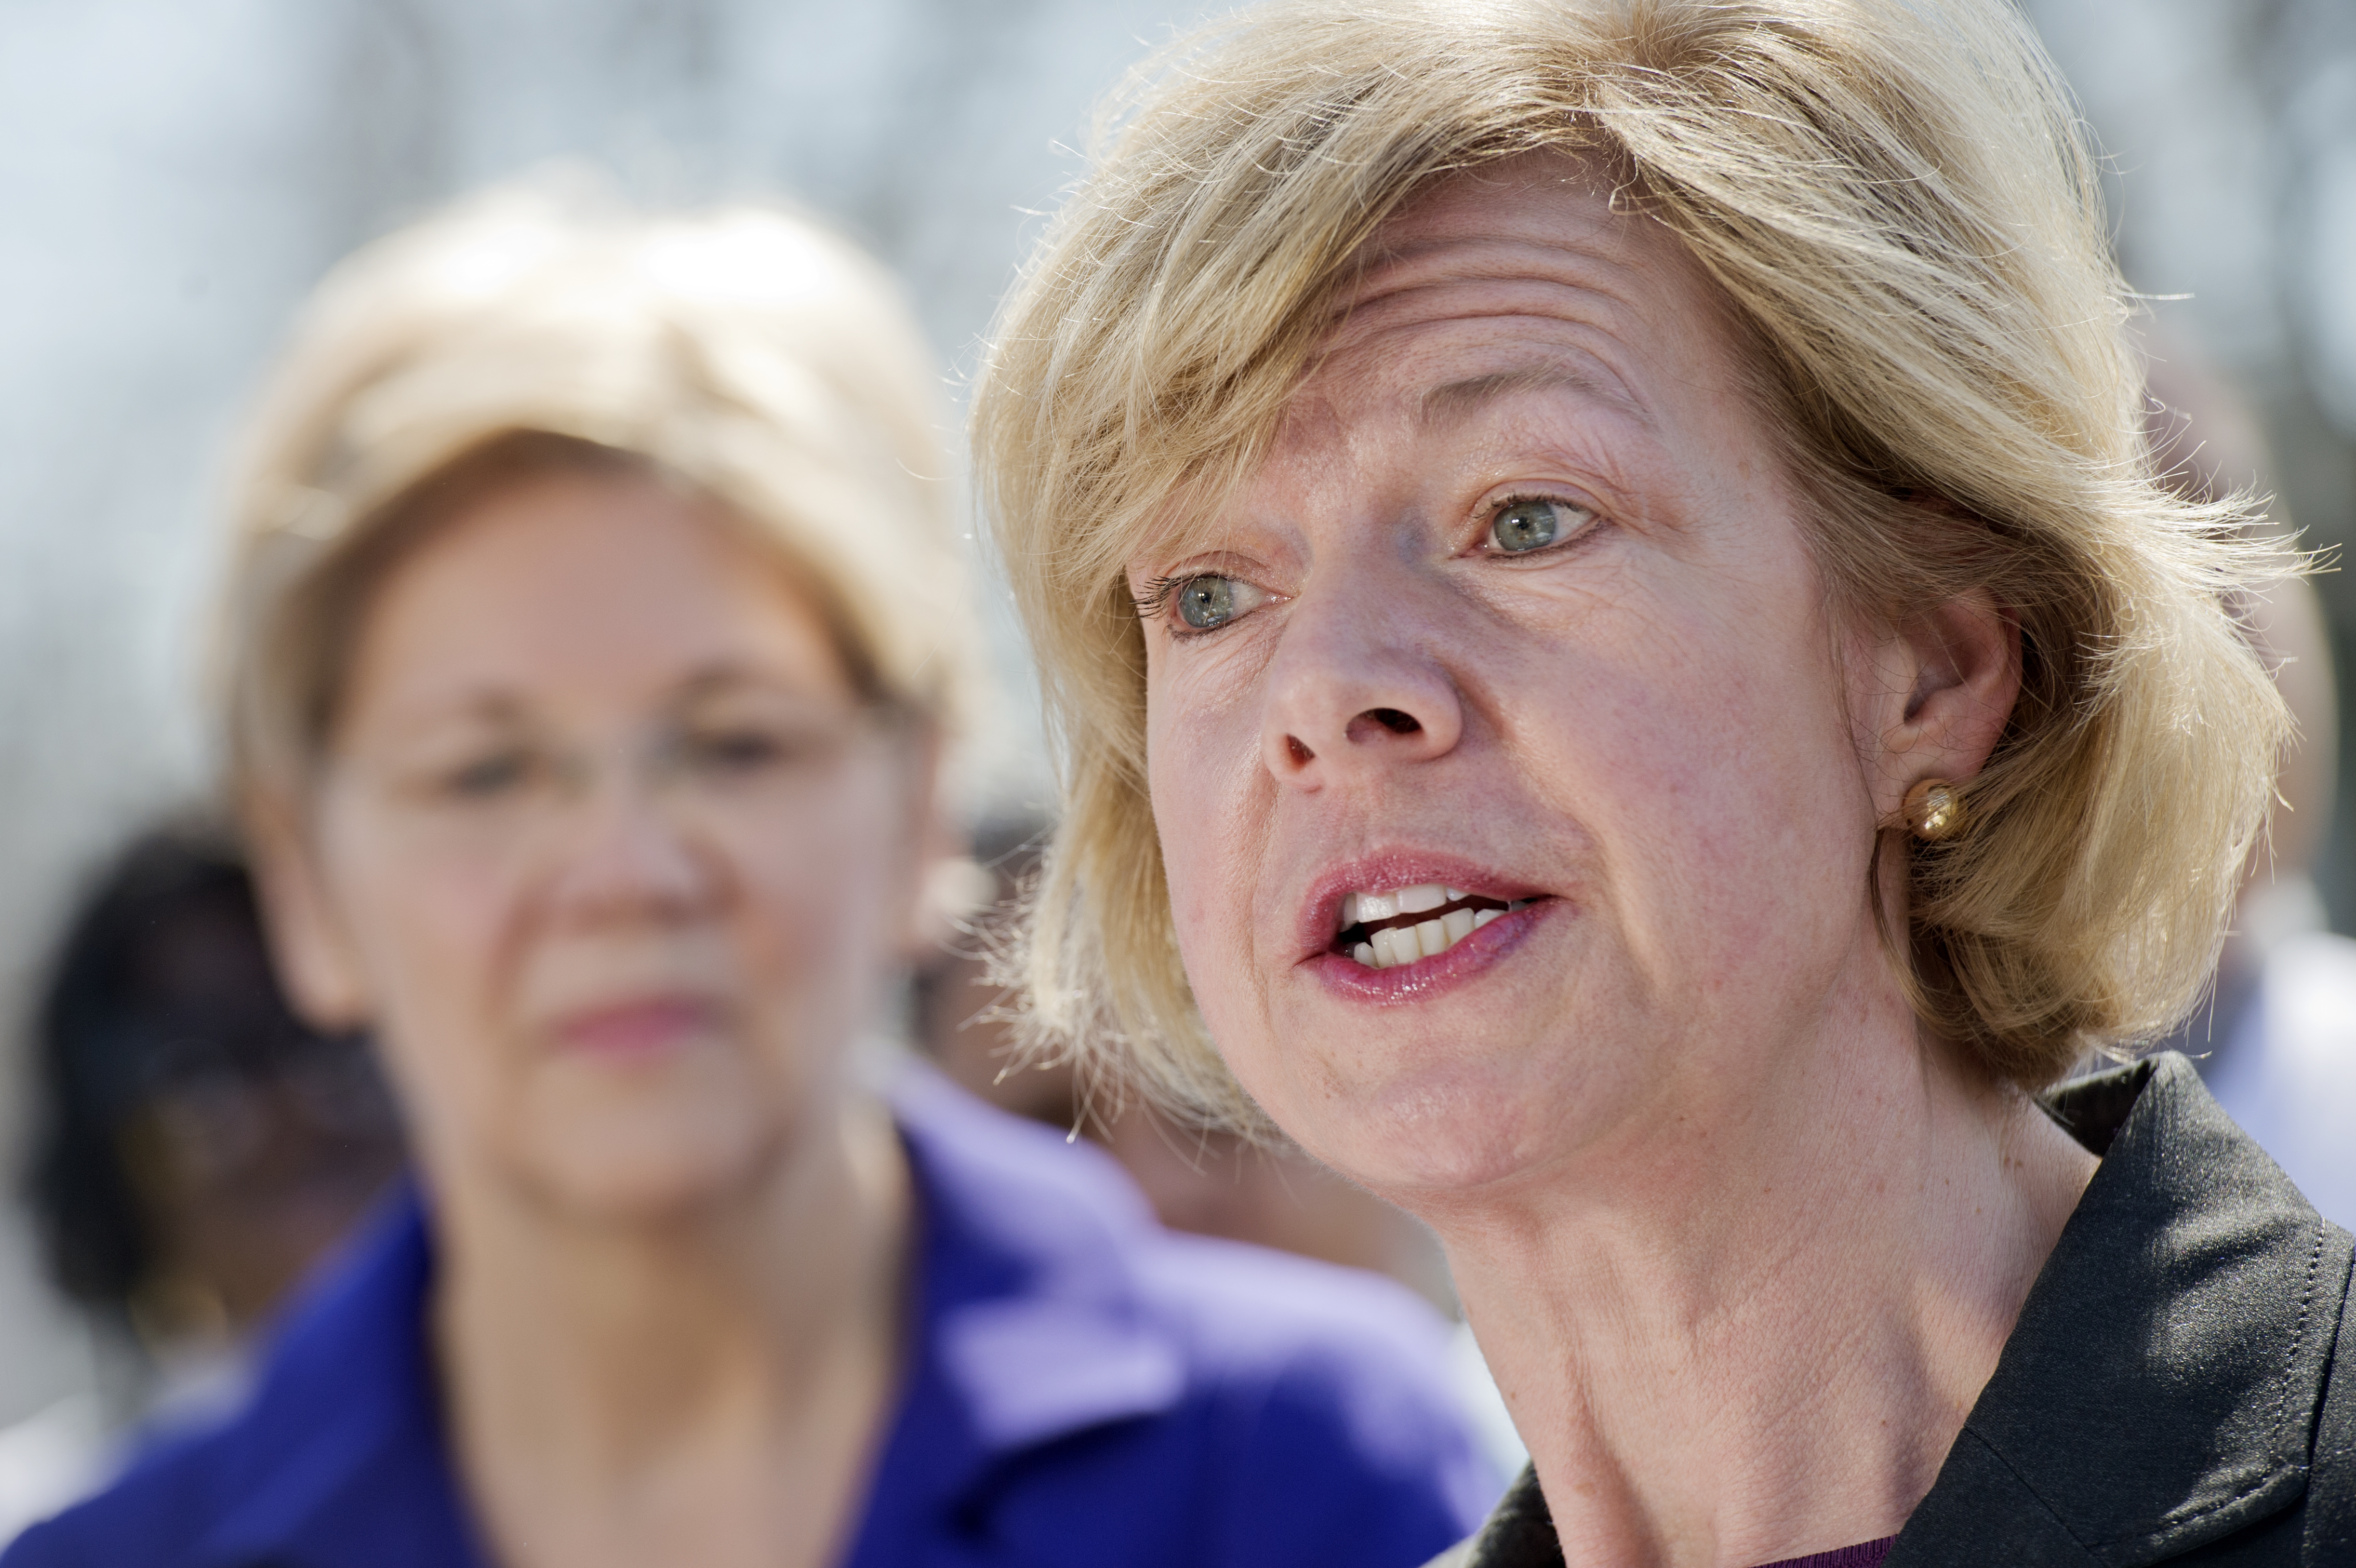 Sens. Tammy Baldwin, D-Wis. and Elizabeth Warren, D-Mass., conduct a rally on the east lawn of the Capitol on March 9, 2016.